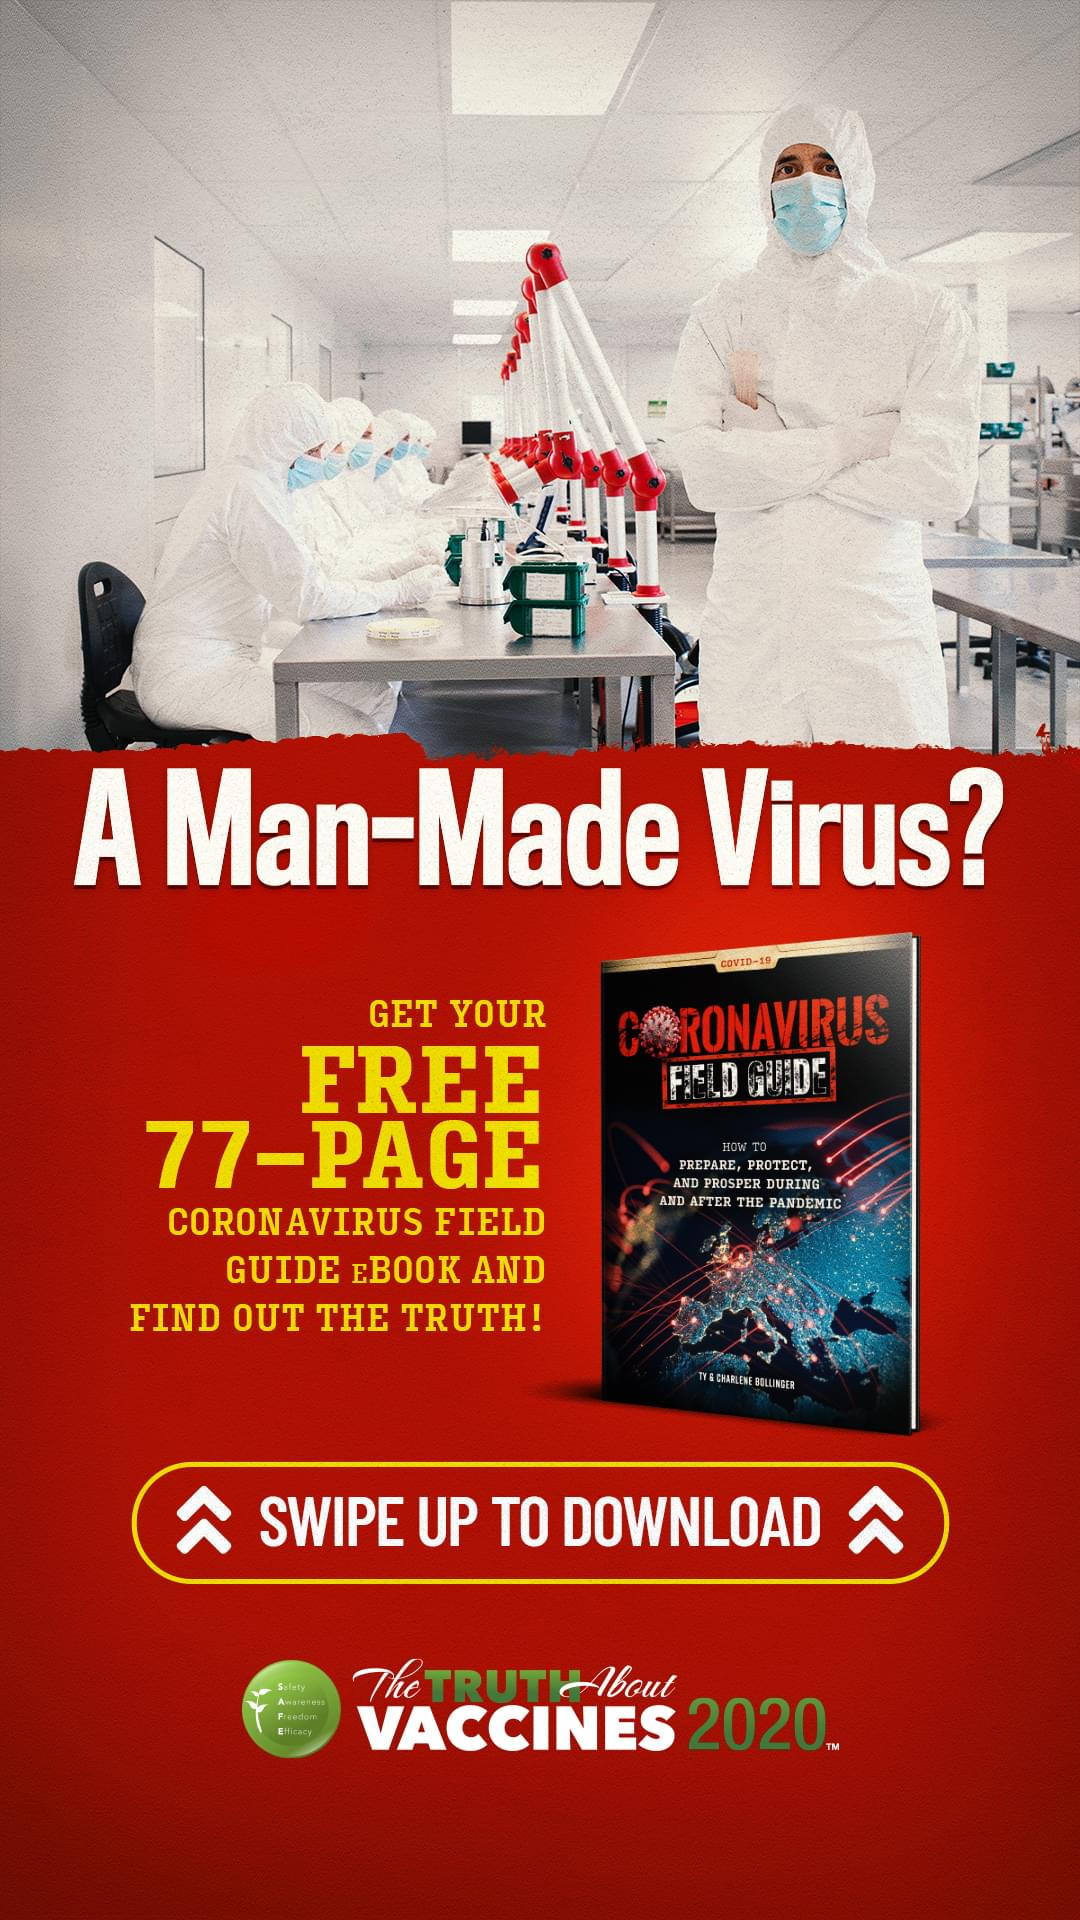 TTAV-eBook-Coronavirus_Field_Guide-Man_Made-IG-1080x1920-Swipe-min